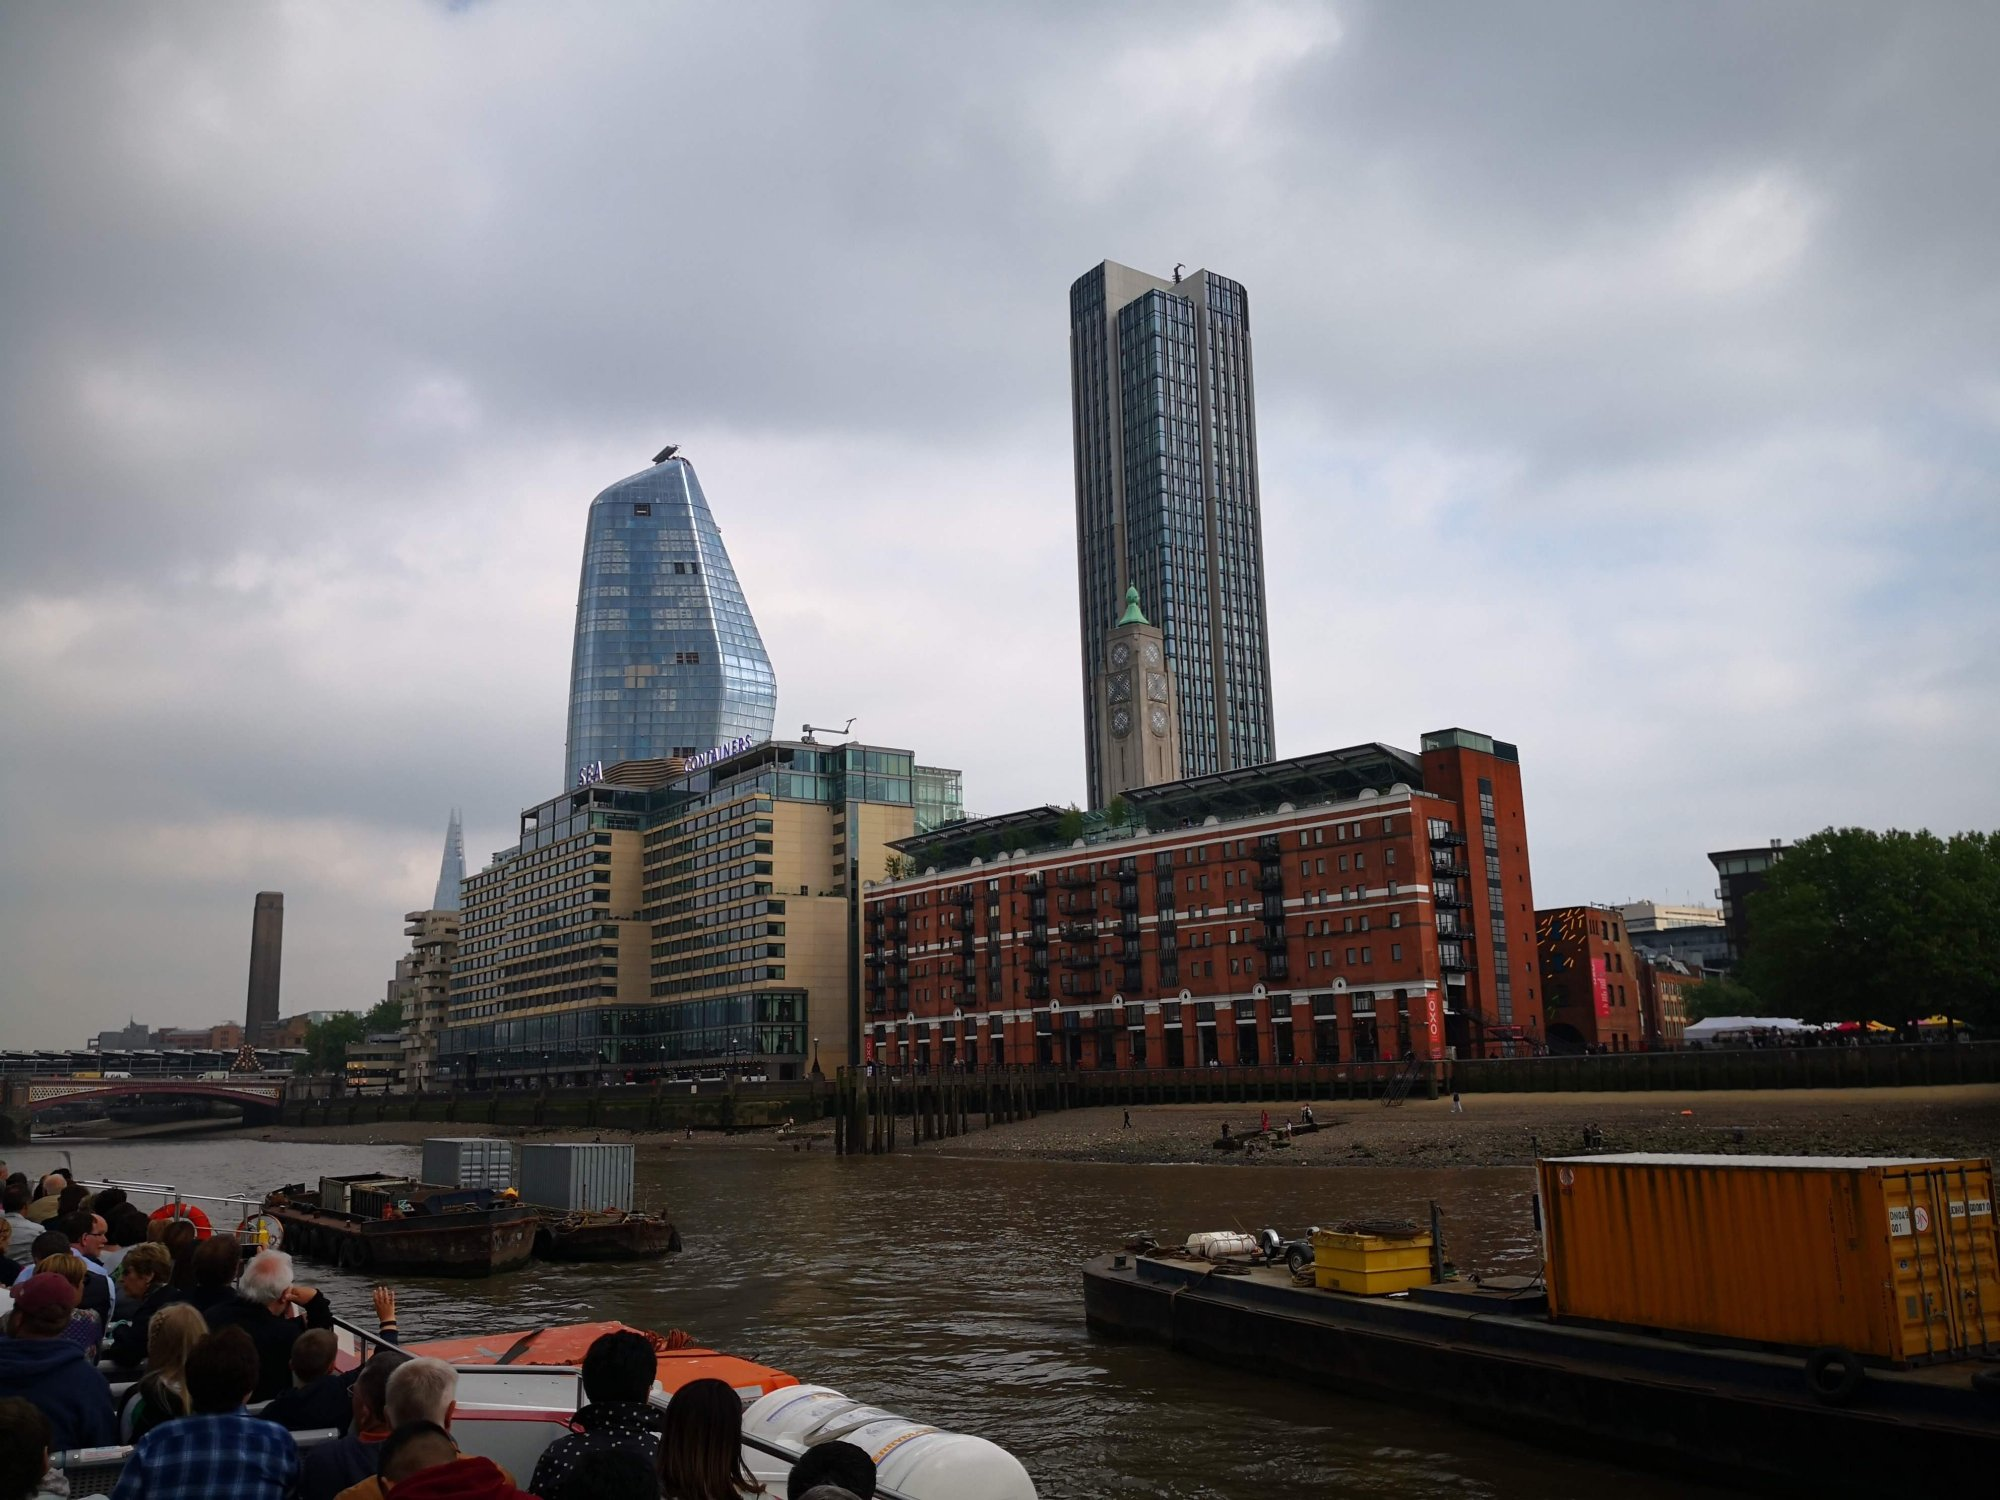 London Skyline from the Thames